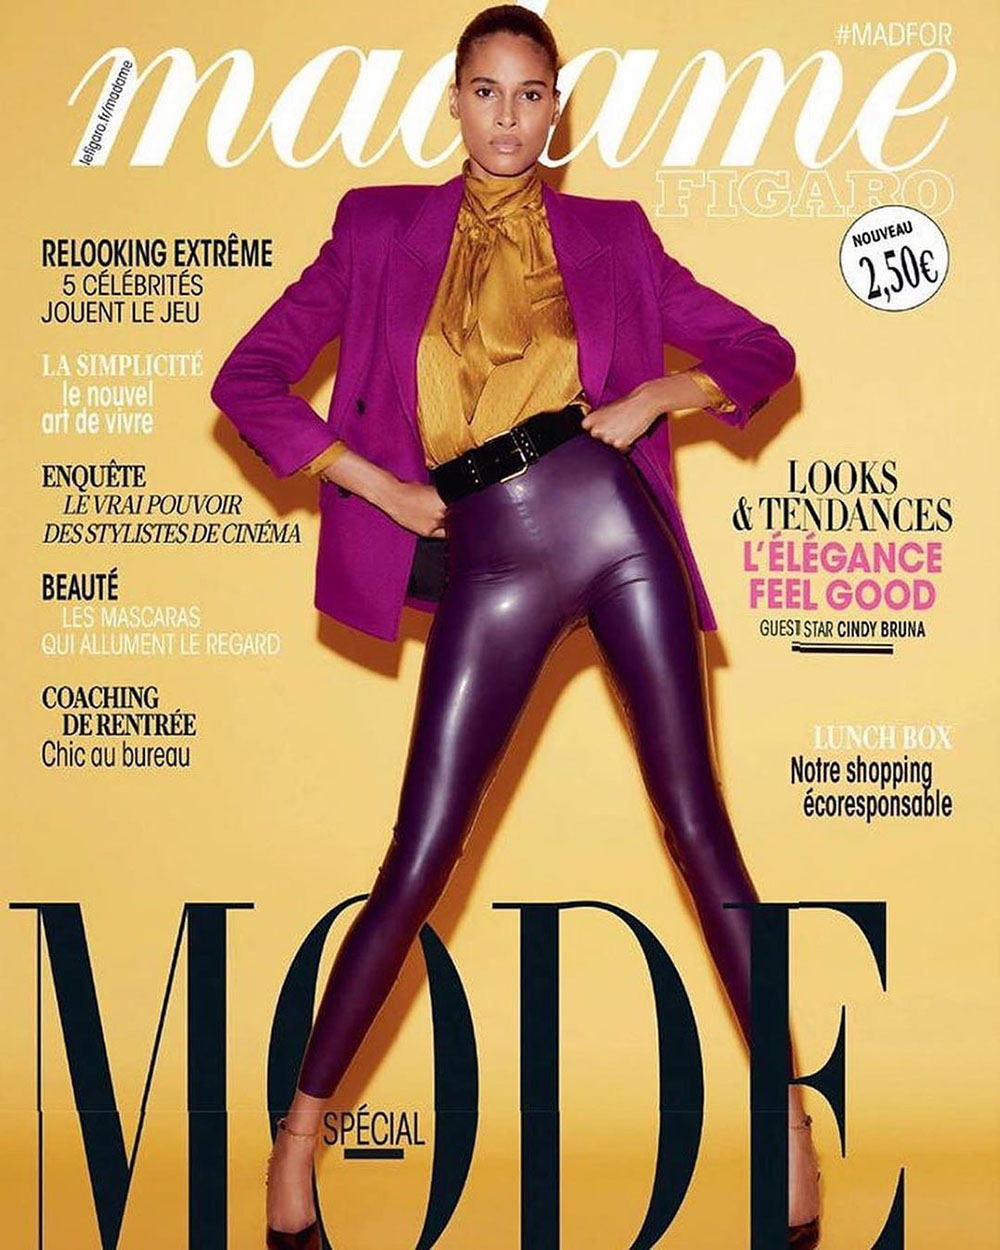 Cindy Bruna covers Madame Figaro August 28th, 2020 by Marcin Tyszka